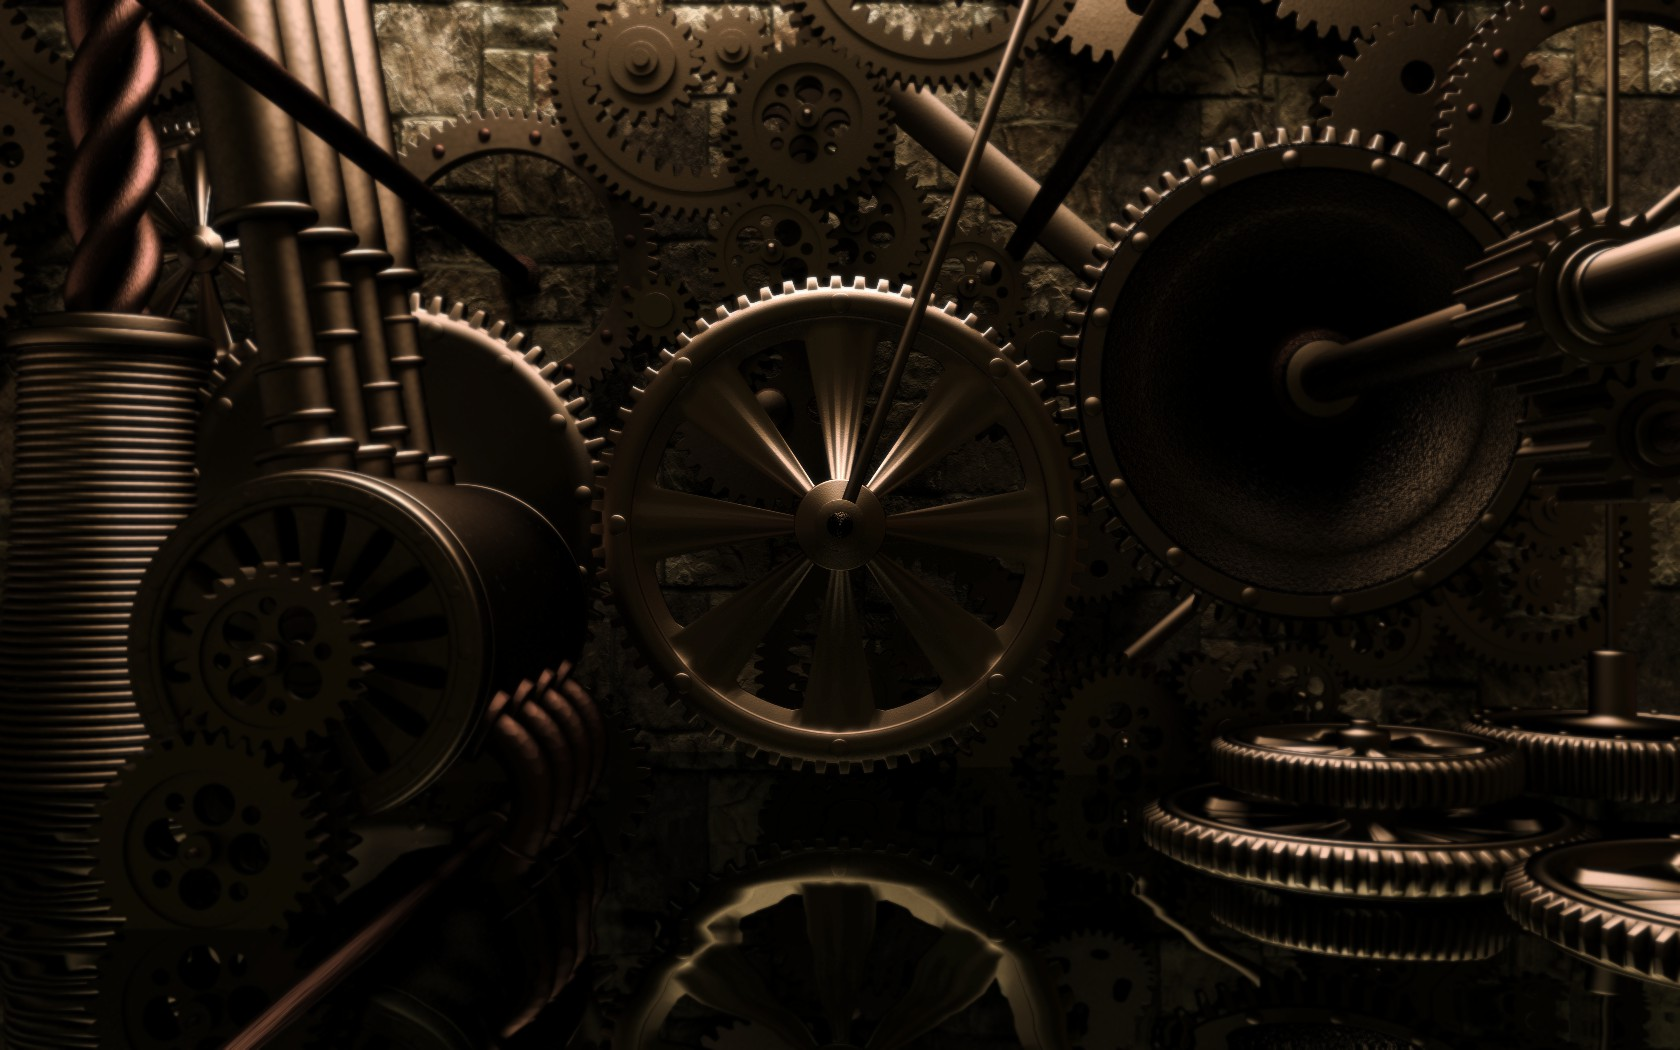 Steampunk Computer Wallpapers Desktop Backgrounds 1680x1050